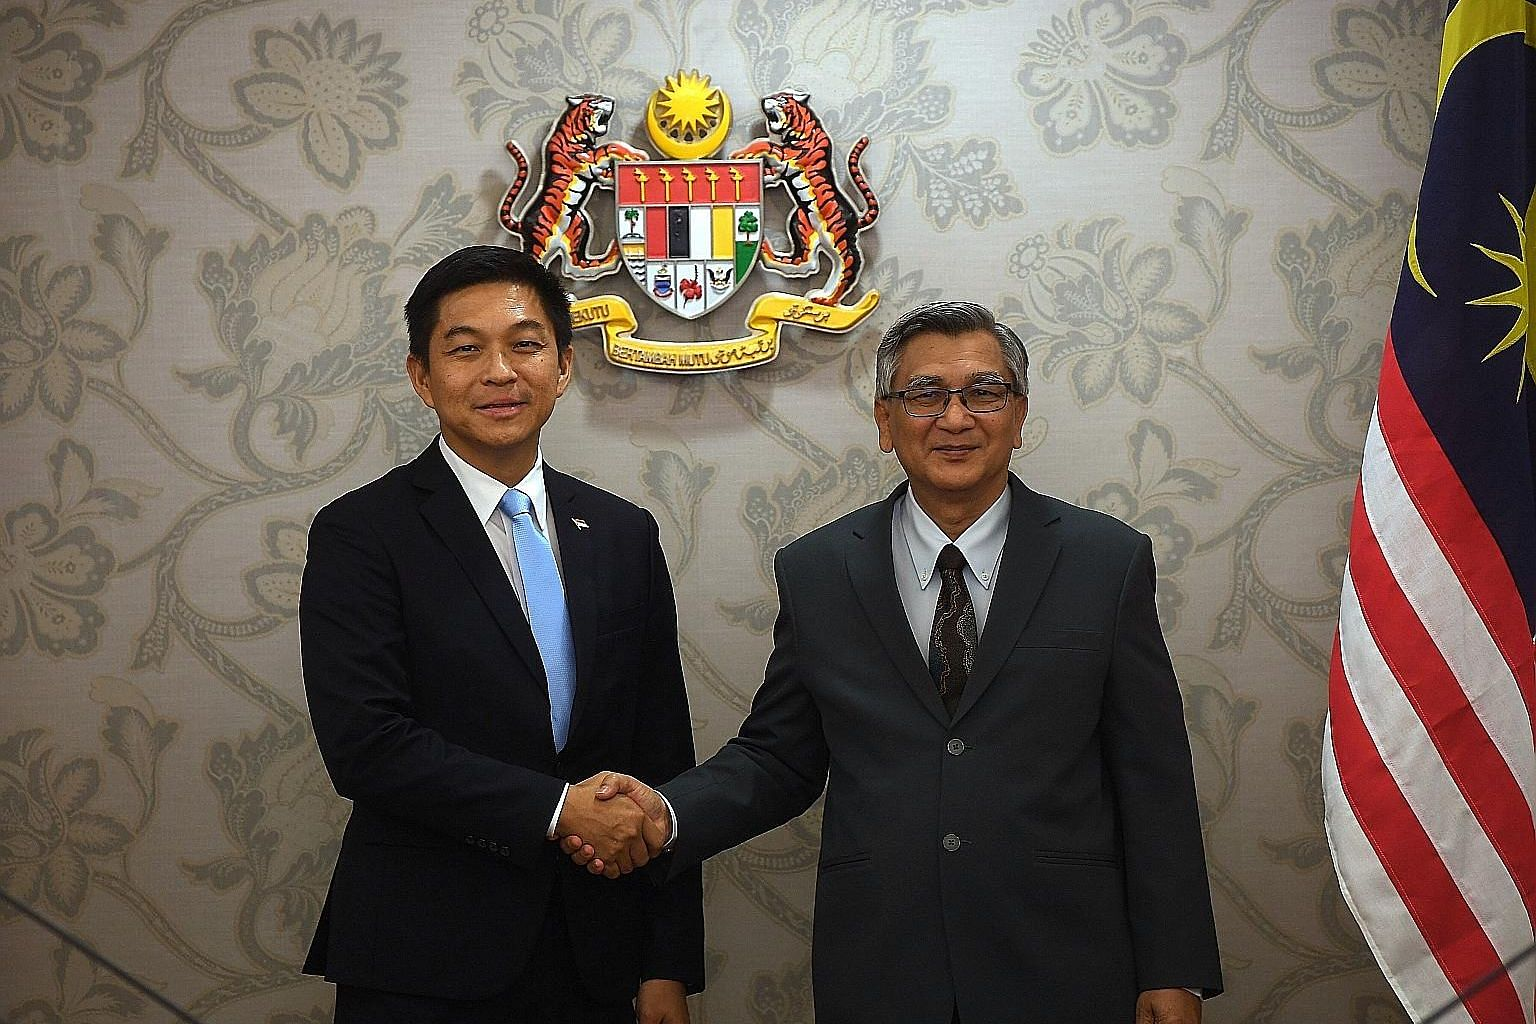 Singapore's Speaker of Parliament Tan Chuan-Jin with his Malaysian counterpart Mohamad Ariff Md Yusof yesterday. As part of his visit, Mr Tan observed a session of the Malaysian Parliament.